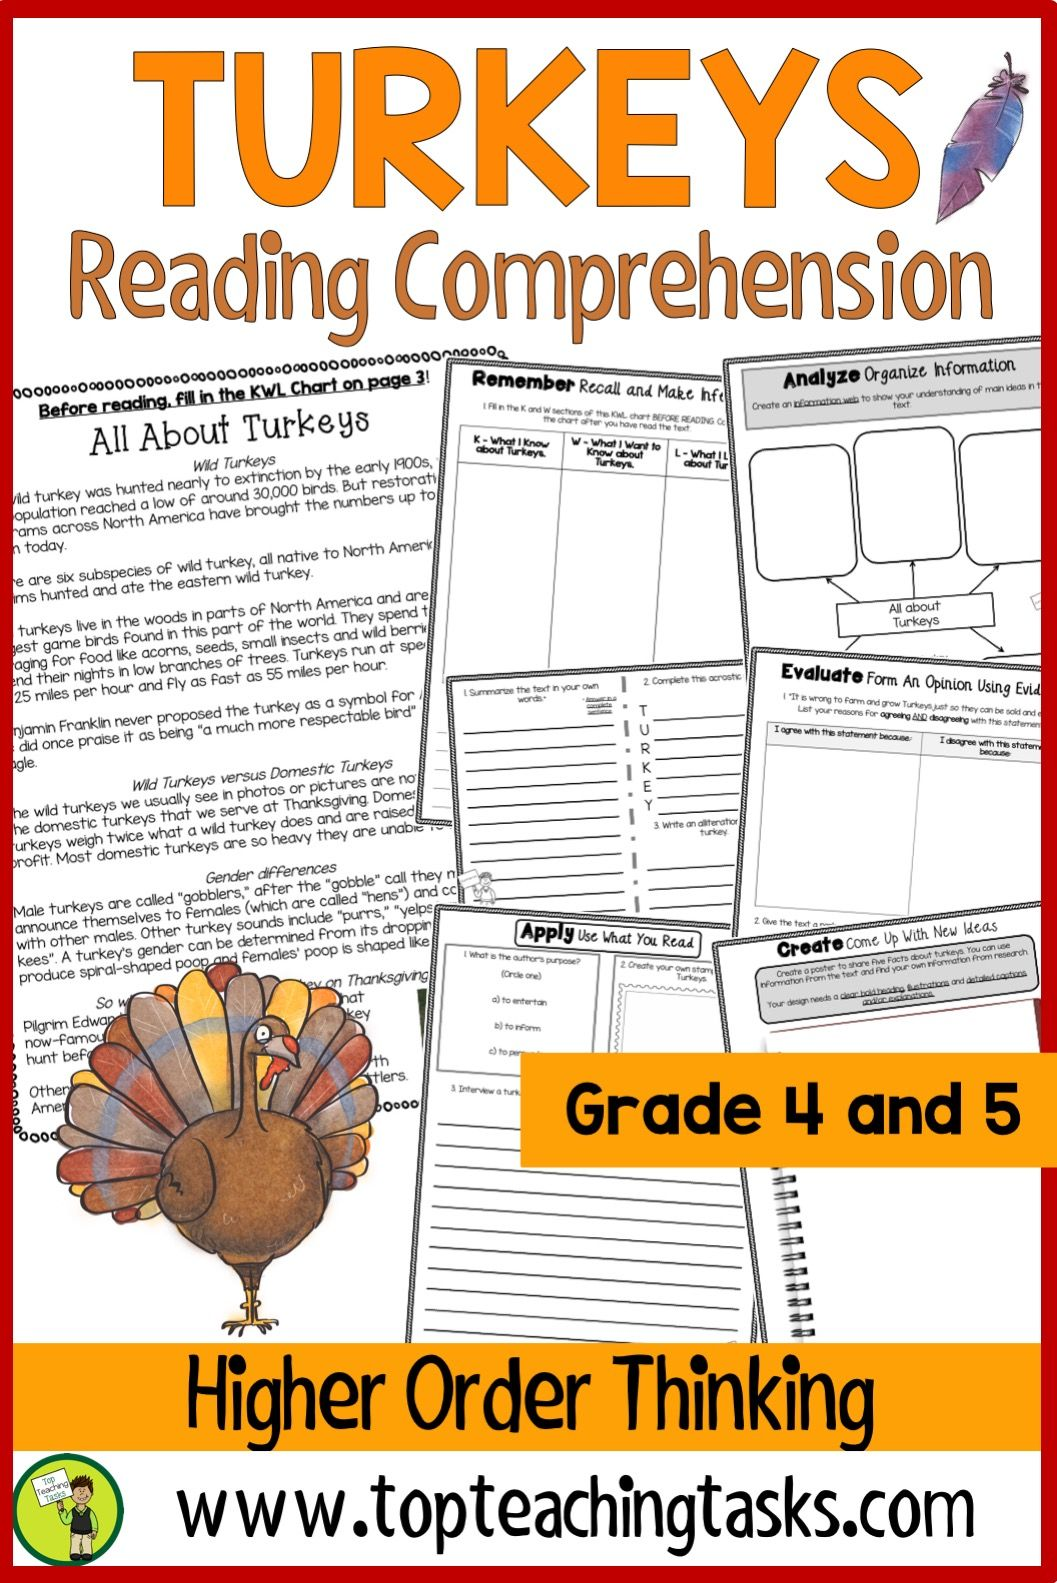 Turkeys Reading Comprehension Passage And Questions